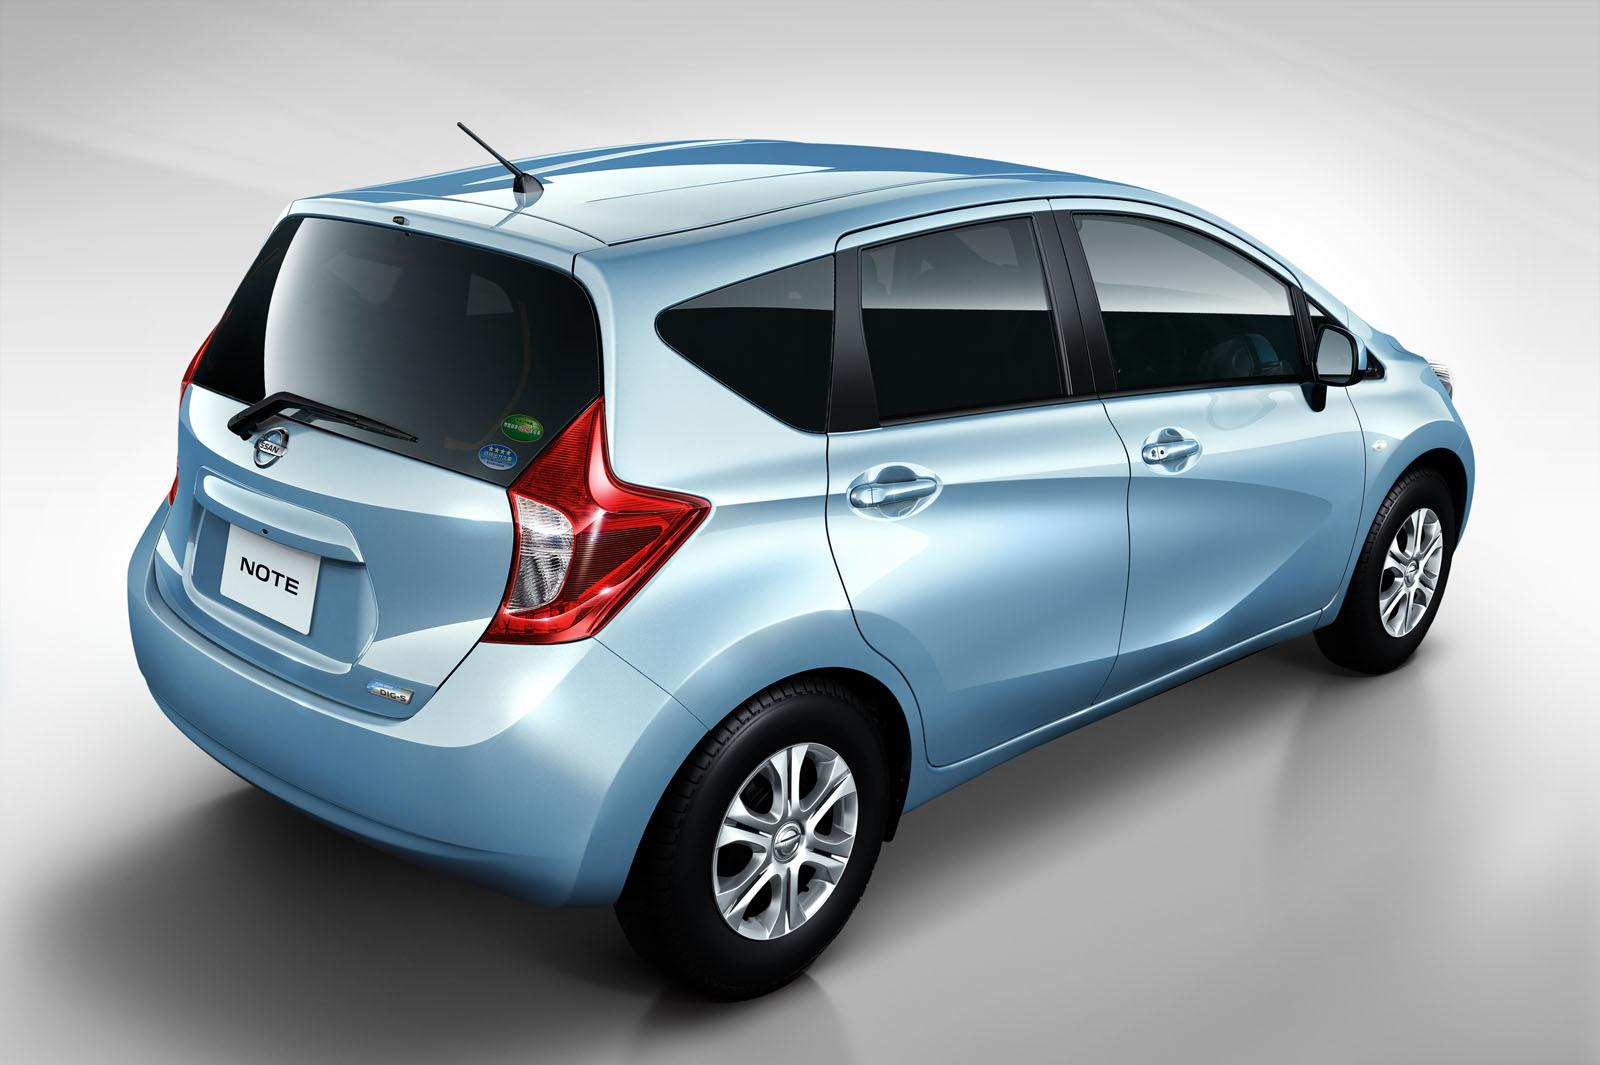 2013 nissan note a new global compact car. Black Bedroom Furniture Sets. Home Design Ideas